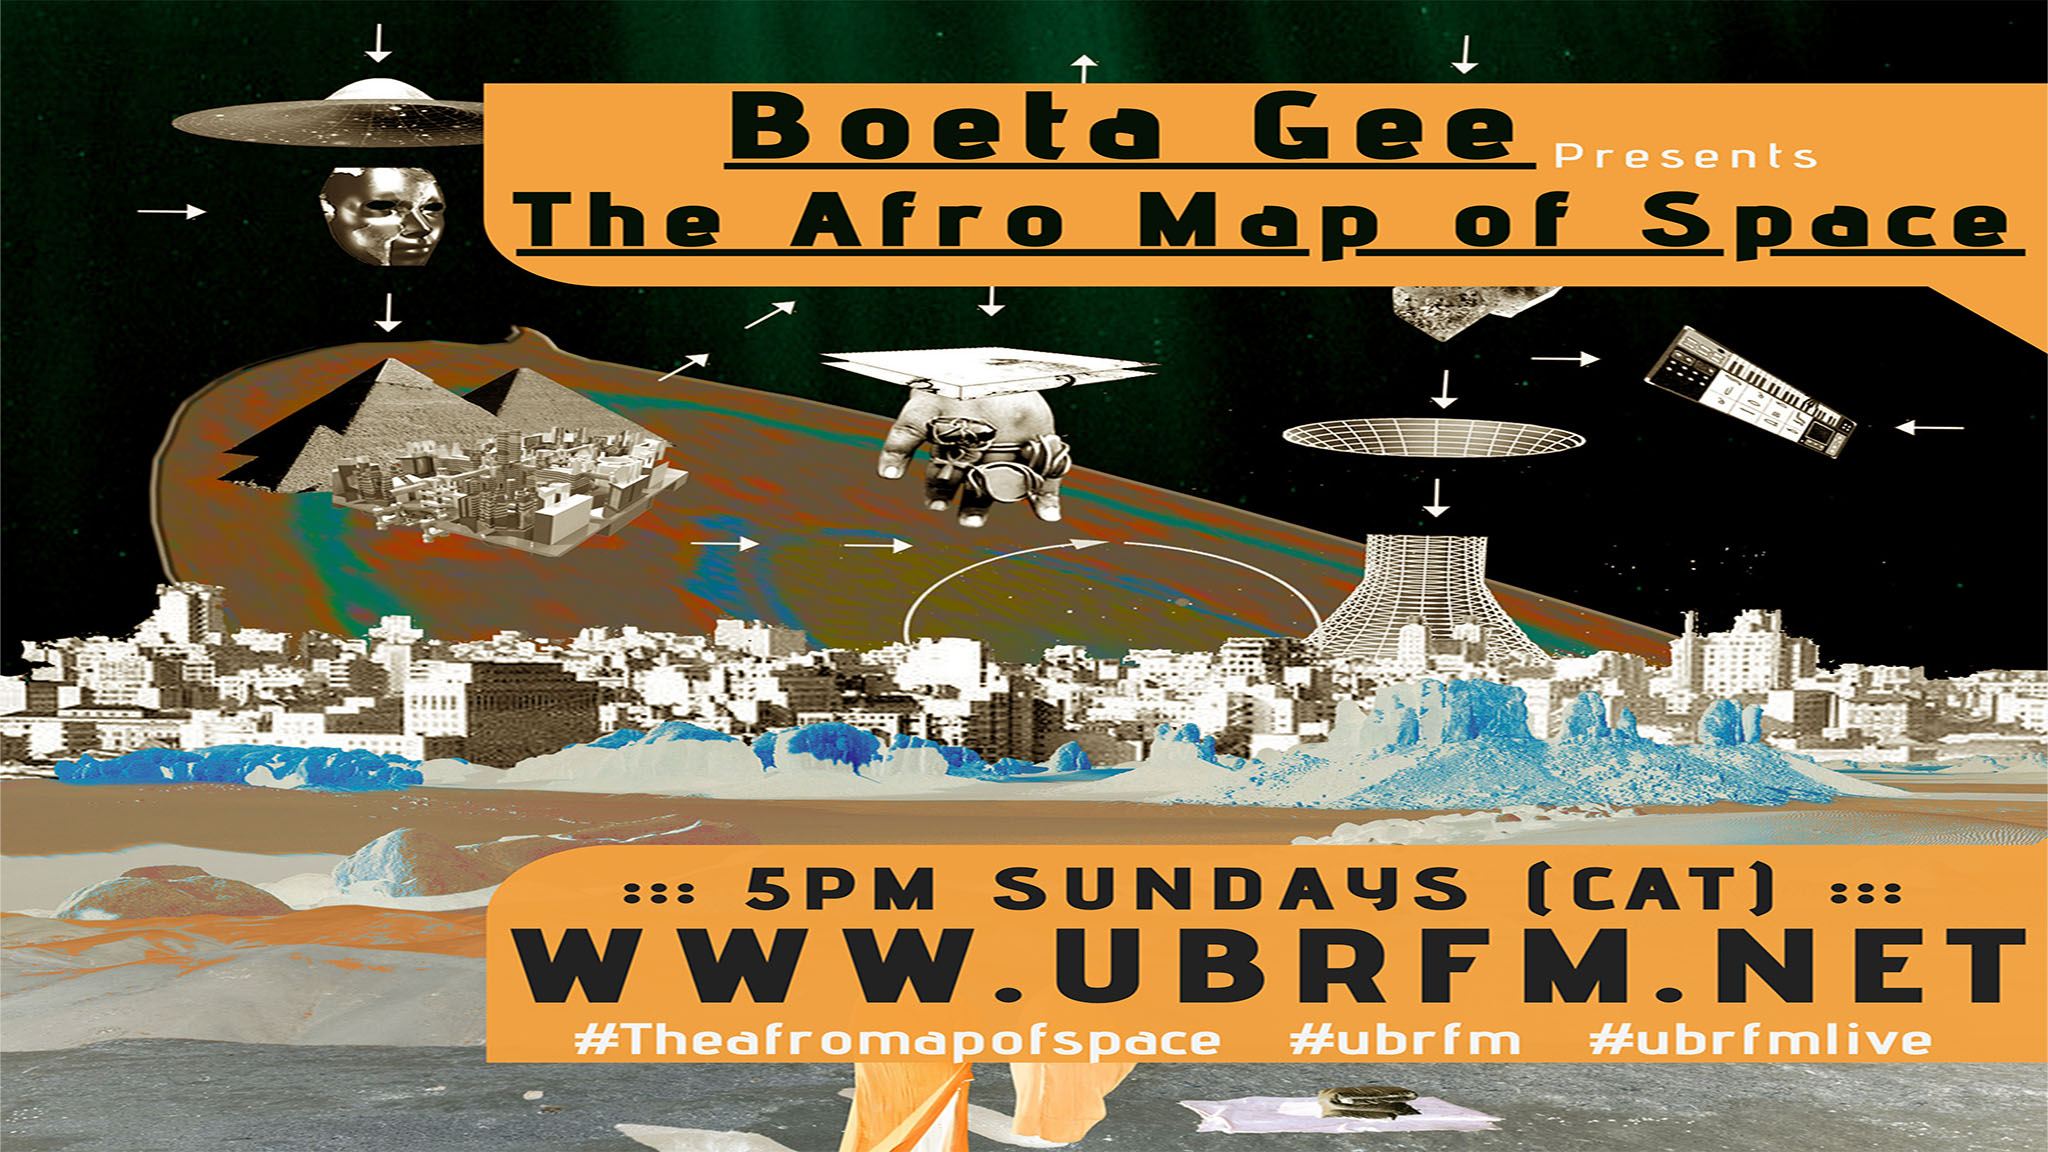 Afromaps of Space New Poster